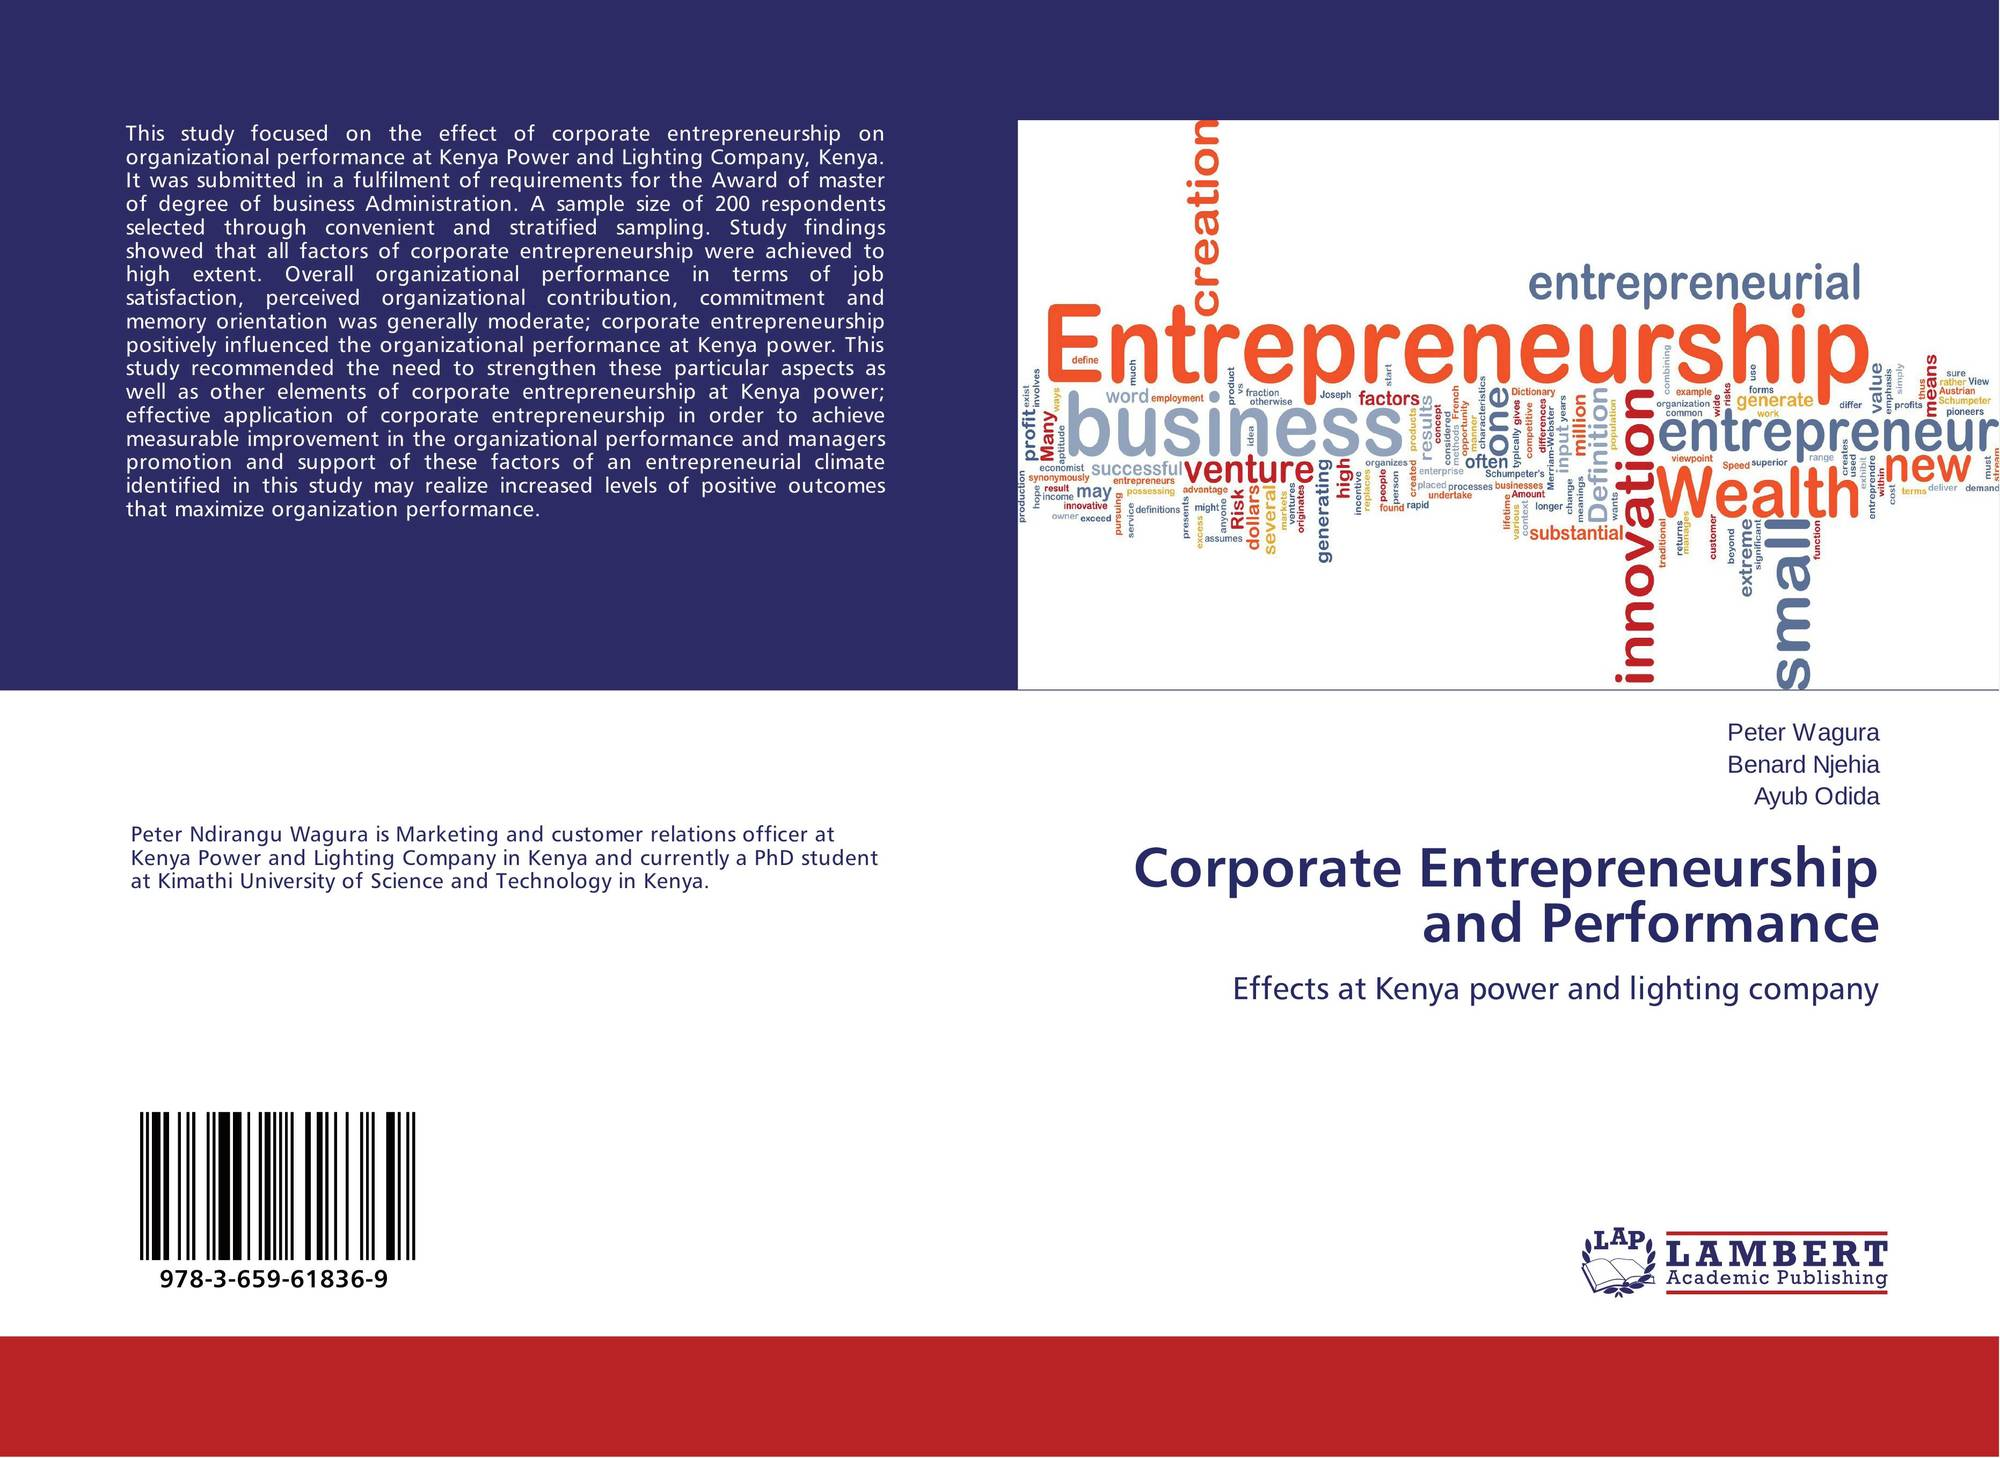 elements of corporate entrepreneurship Entrepreneurship from chapter no 1 to 10 quiz 1 1  entrepreneurship culture b) corporate culture c) intrapreneurial culture d) none of the given options 14.